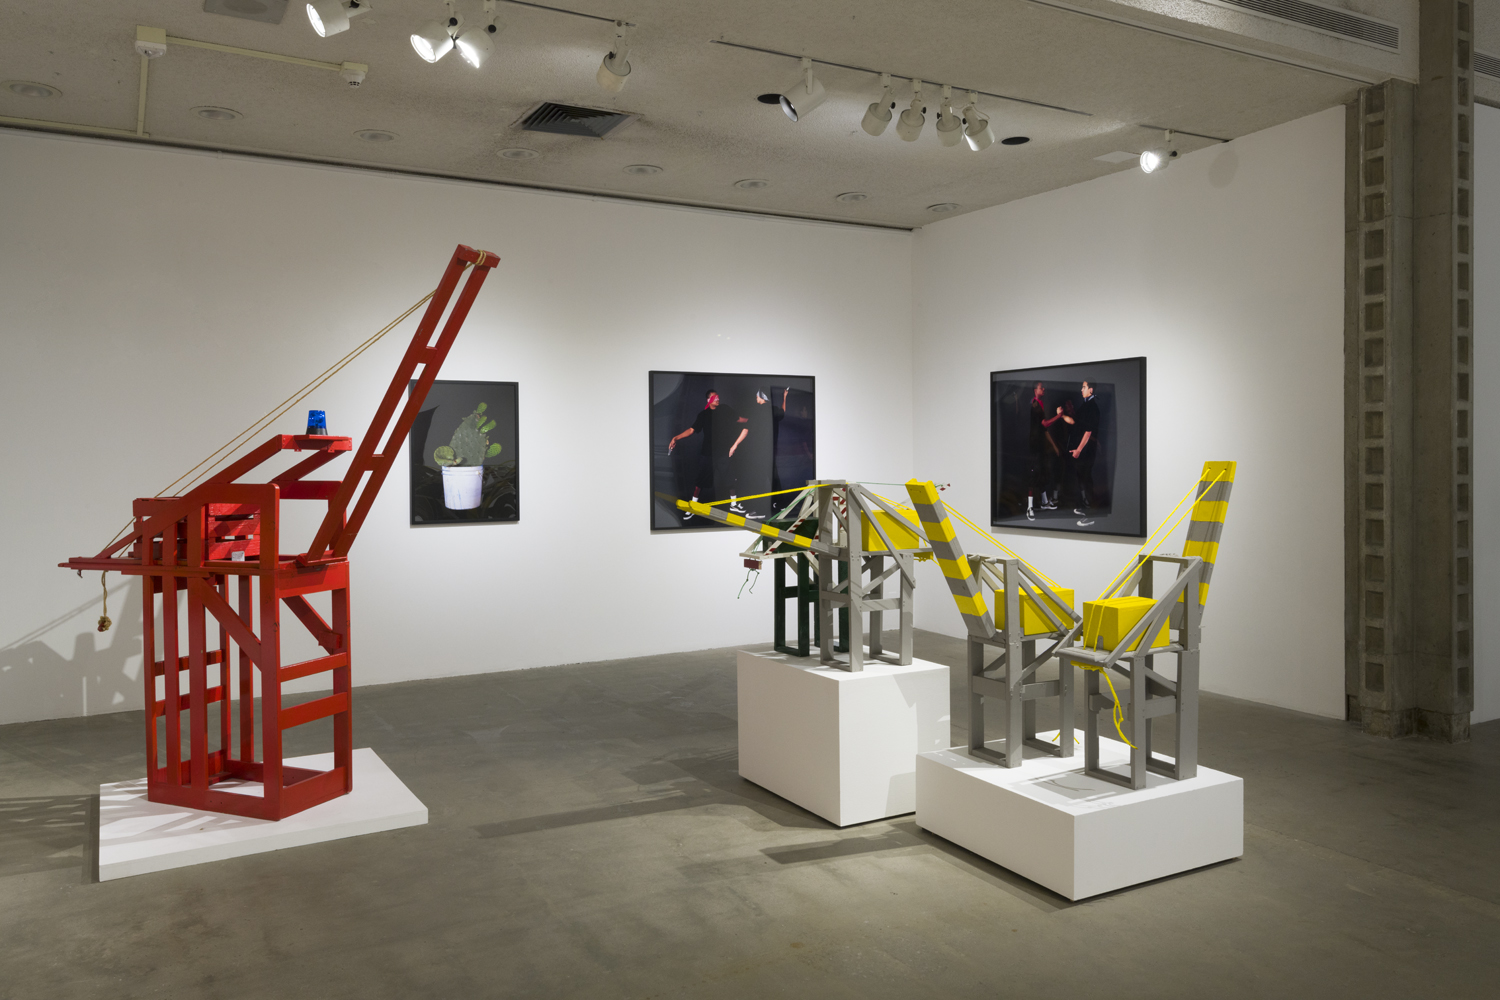 In this artwork installation by the artist Mario Ybarra Jr., there is one large red, wooden sculpture depicting a crane, with two smaller wooden sculptures depicting cranes (painted grey and yellow) to the red crane's right. There are also three photographs hanging on the wall behind these sculptures; one depicts a cactus, another photograph depicts two figures of color engaged in a knife fight, and the other photograph depicts the same two figures clasping hands in a friendly manner.